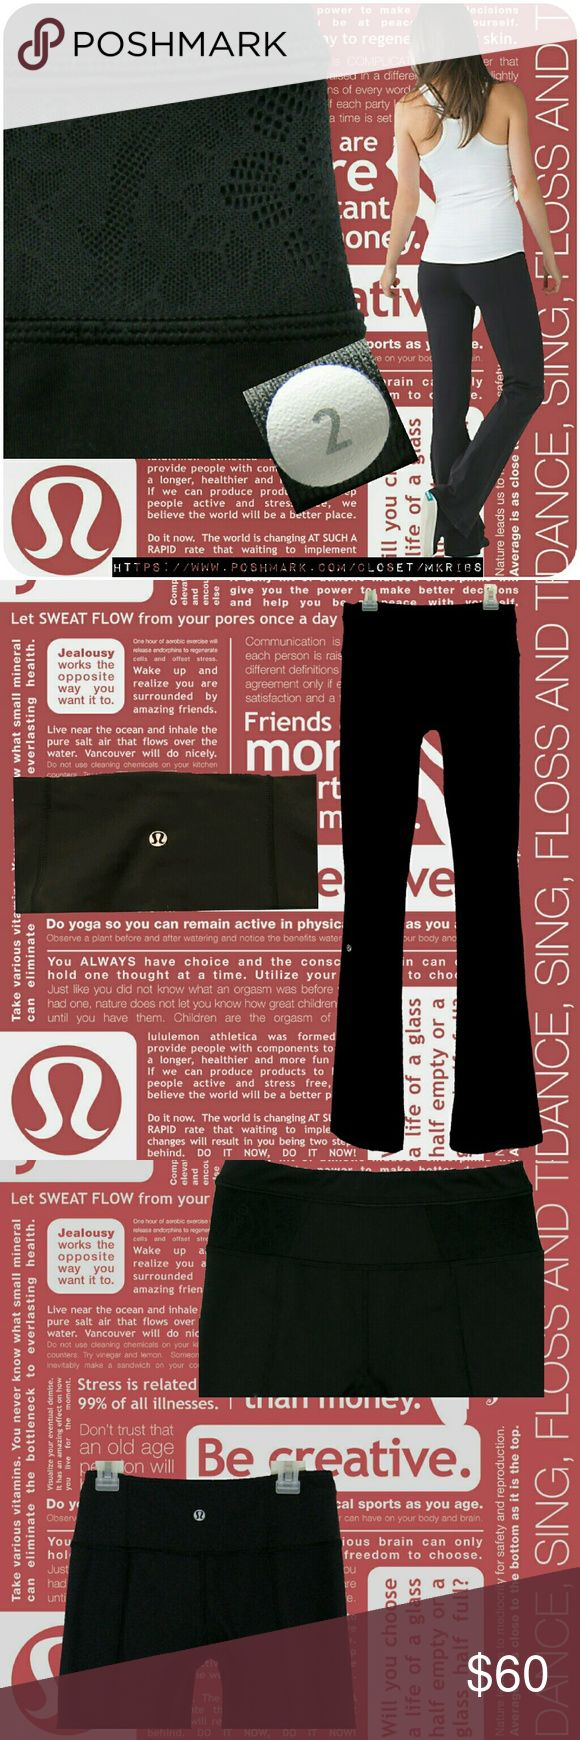 ♥Lululemon black reversible groove pant lace inset Excellent condition!  Lululemon groove pant in size 2.  Reversible. Solid black on one side. The other side has lace inset on the sides of waist band. Solid side has Lulu symbol on back of waistband. Lace